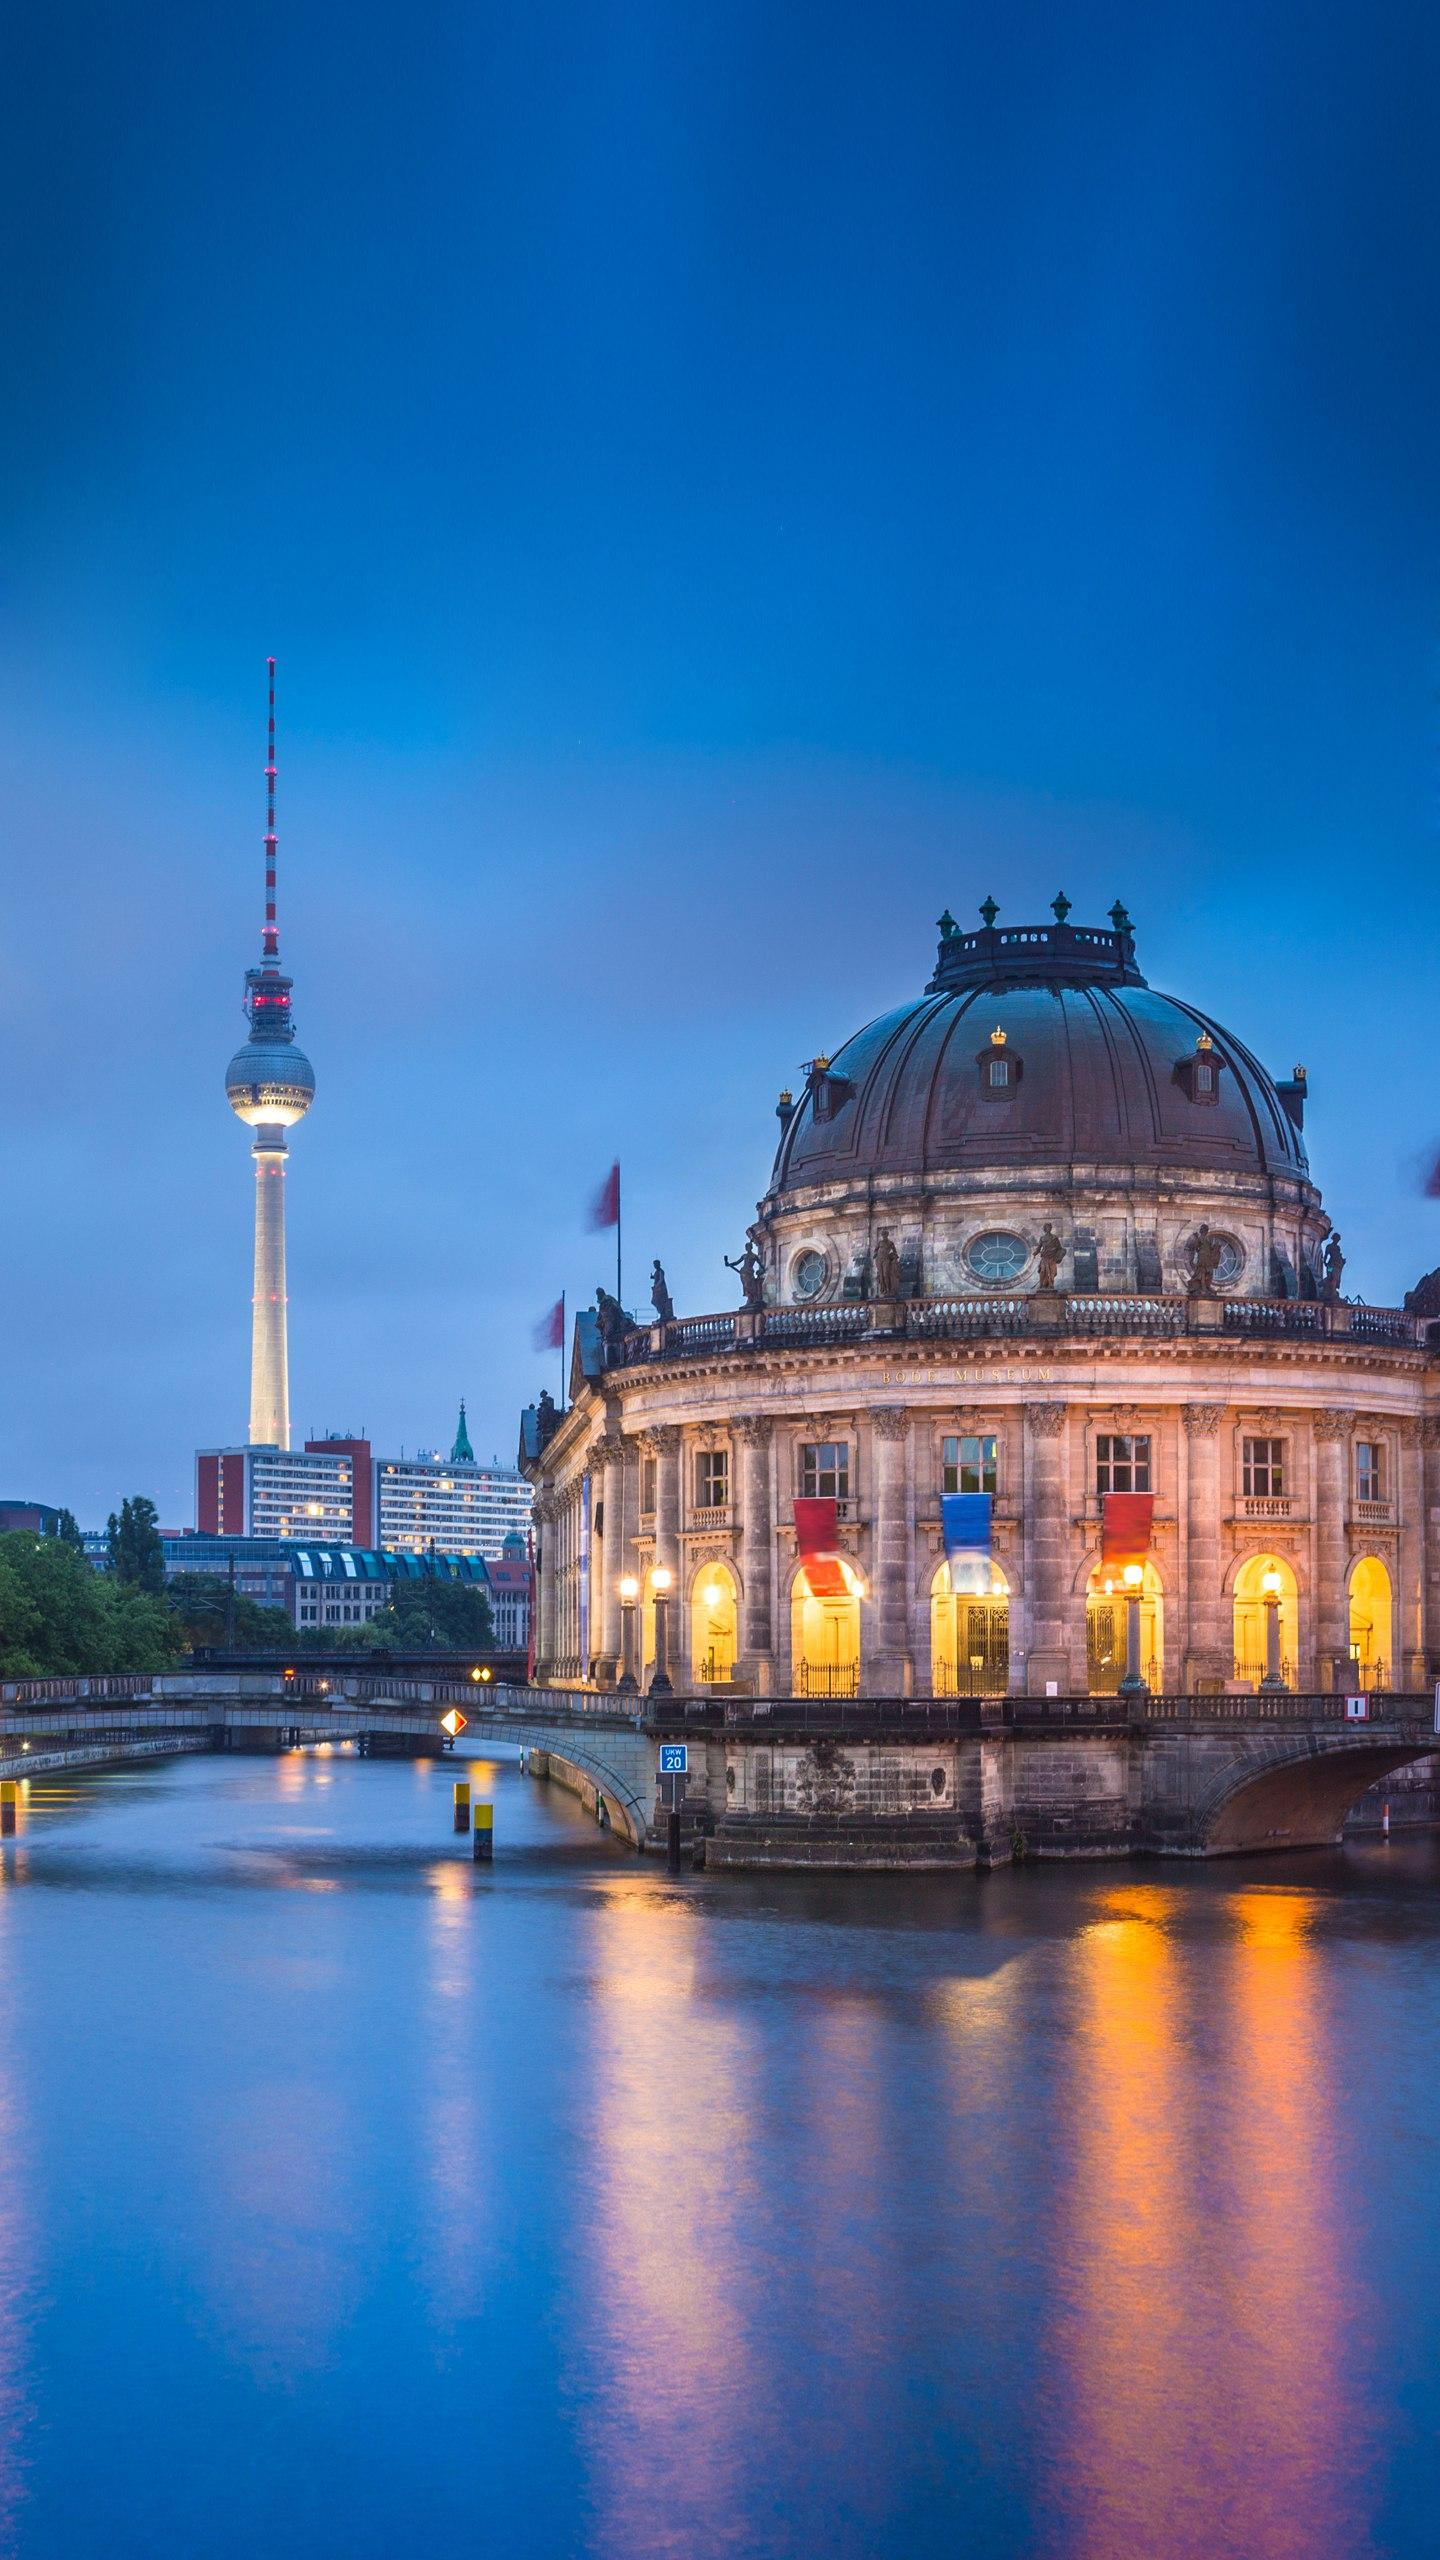 Germany - Berlin. As the capital of Germany, it attracts people with many famous buildings, heavy historical and artistic atmosphere.